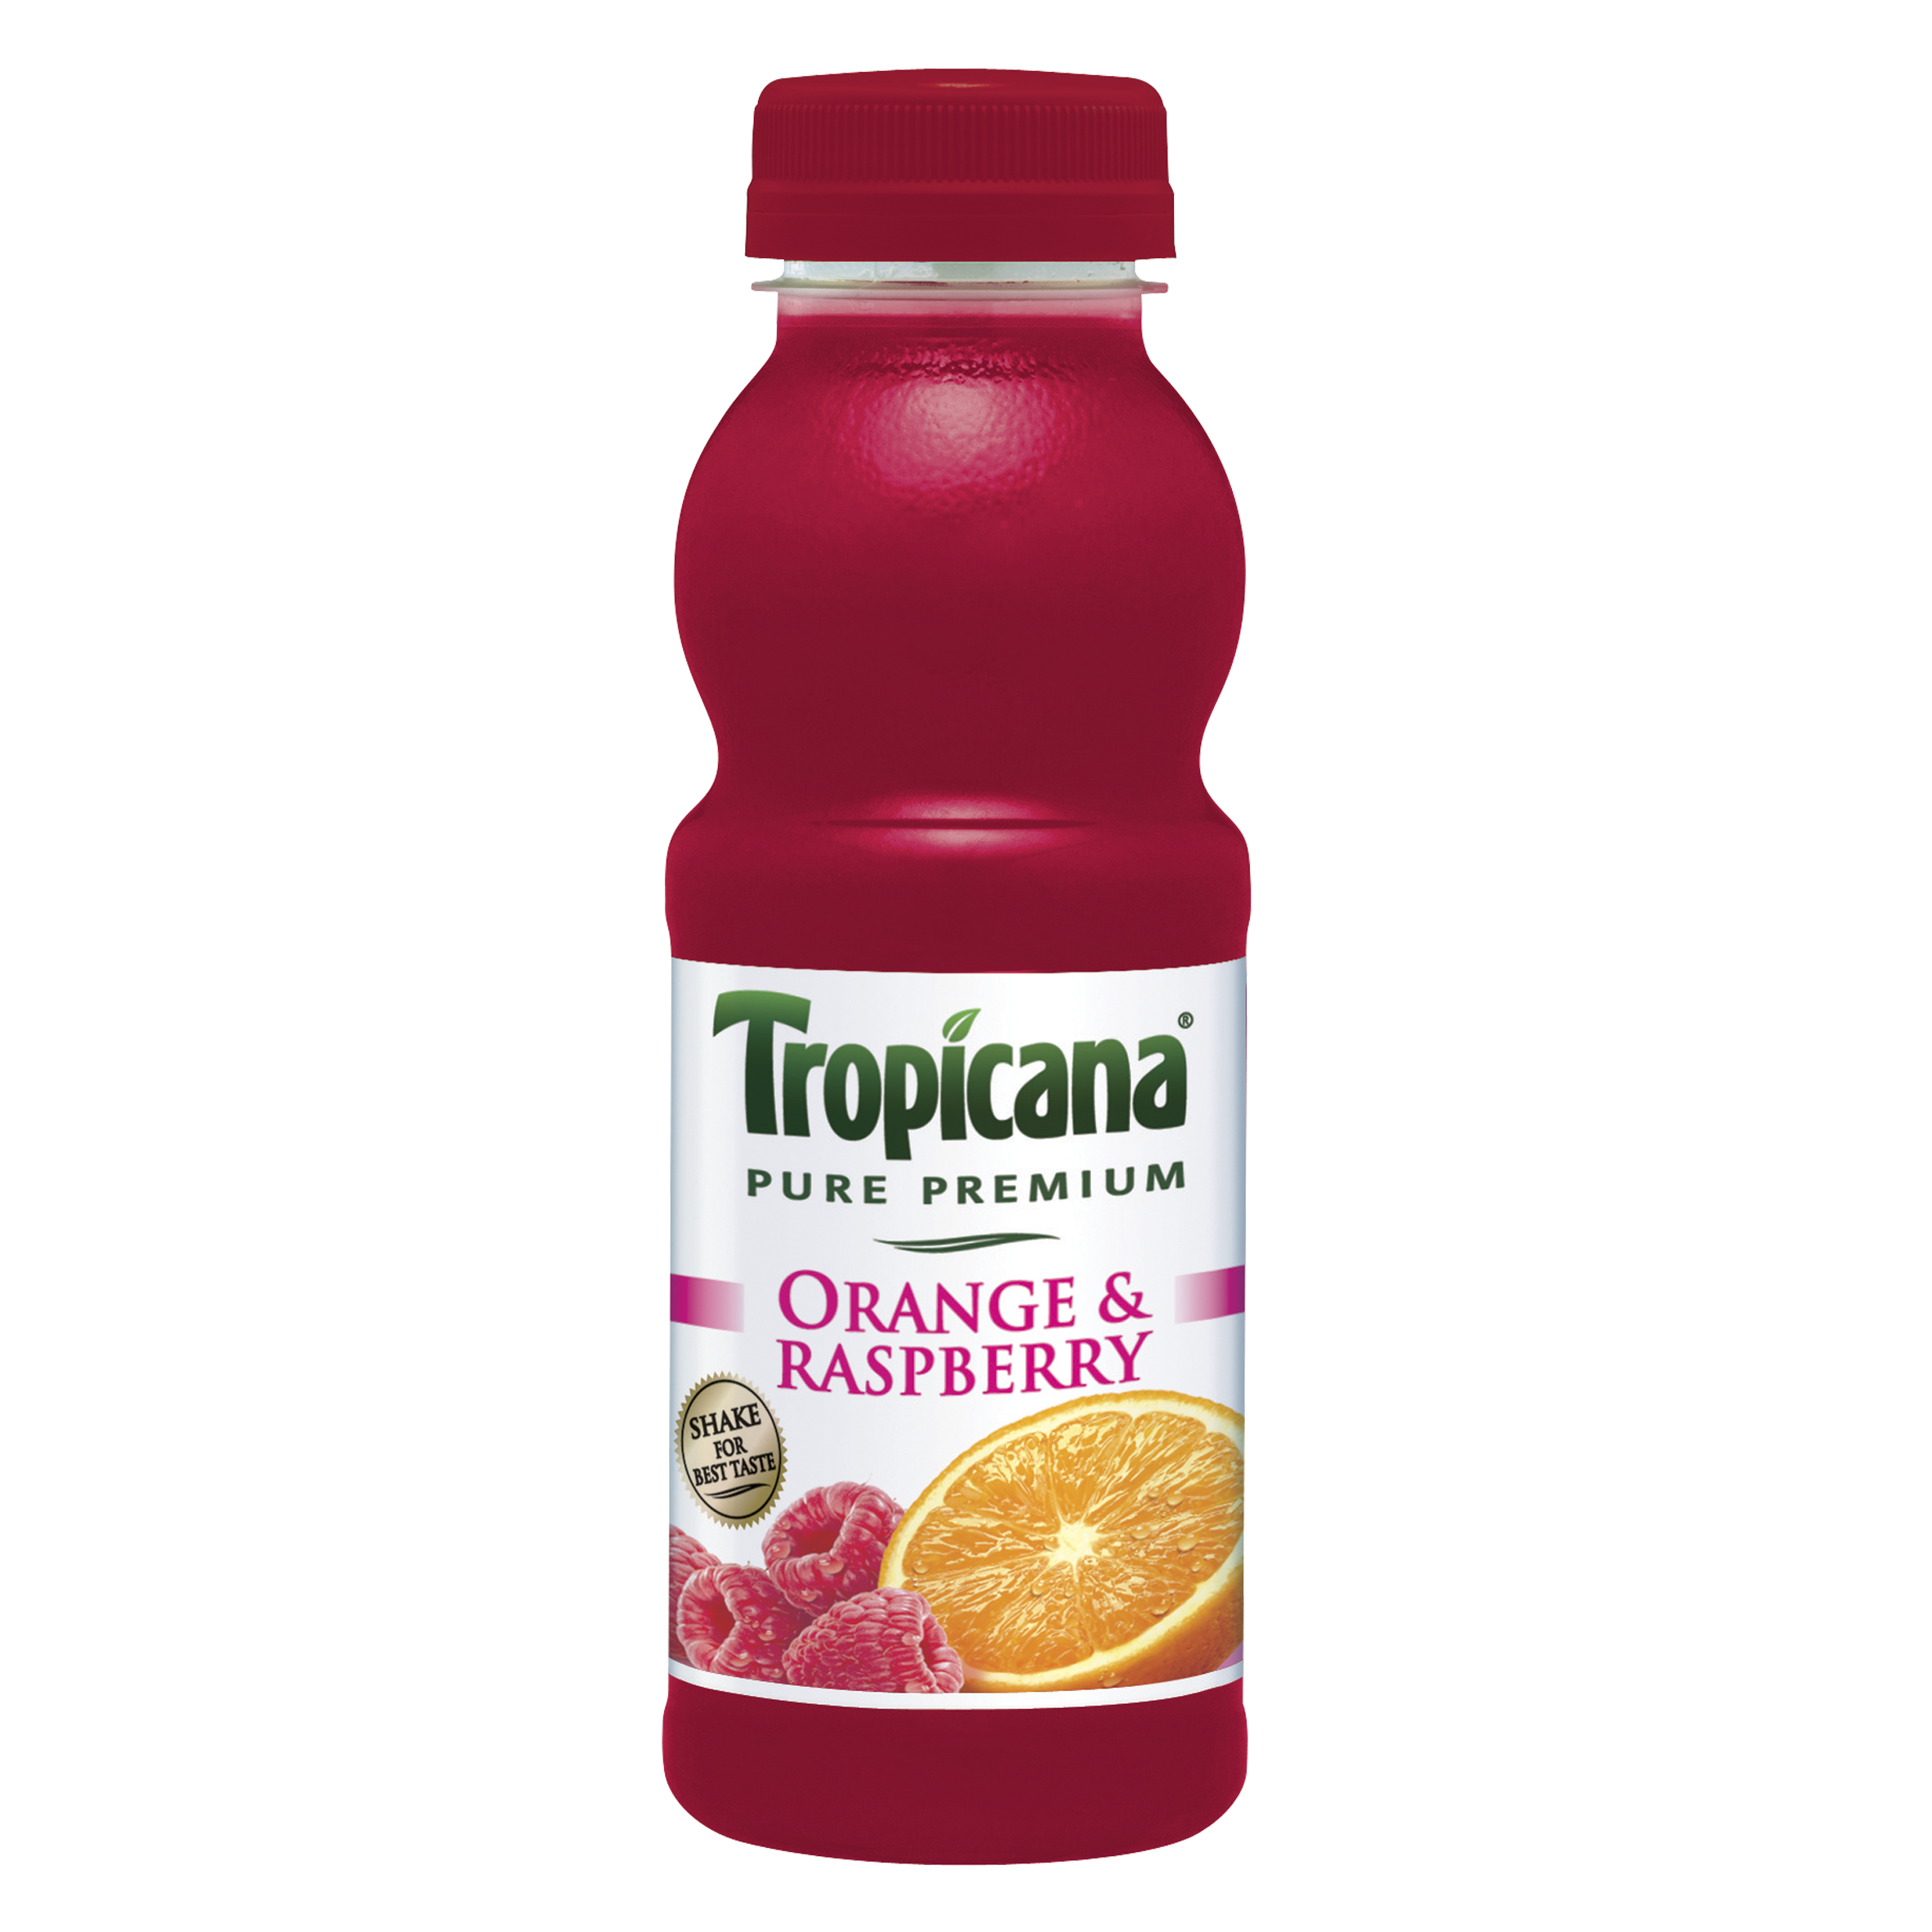 this orange and raspberry tropicana juice is perfect for blending